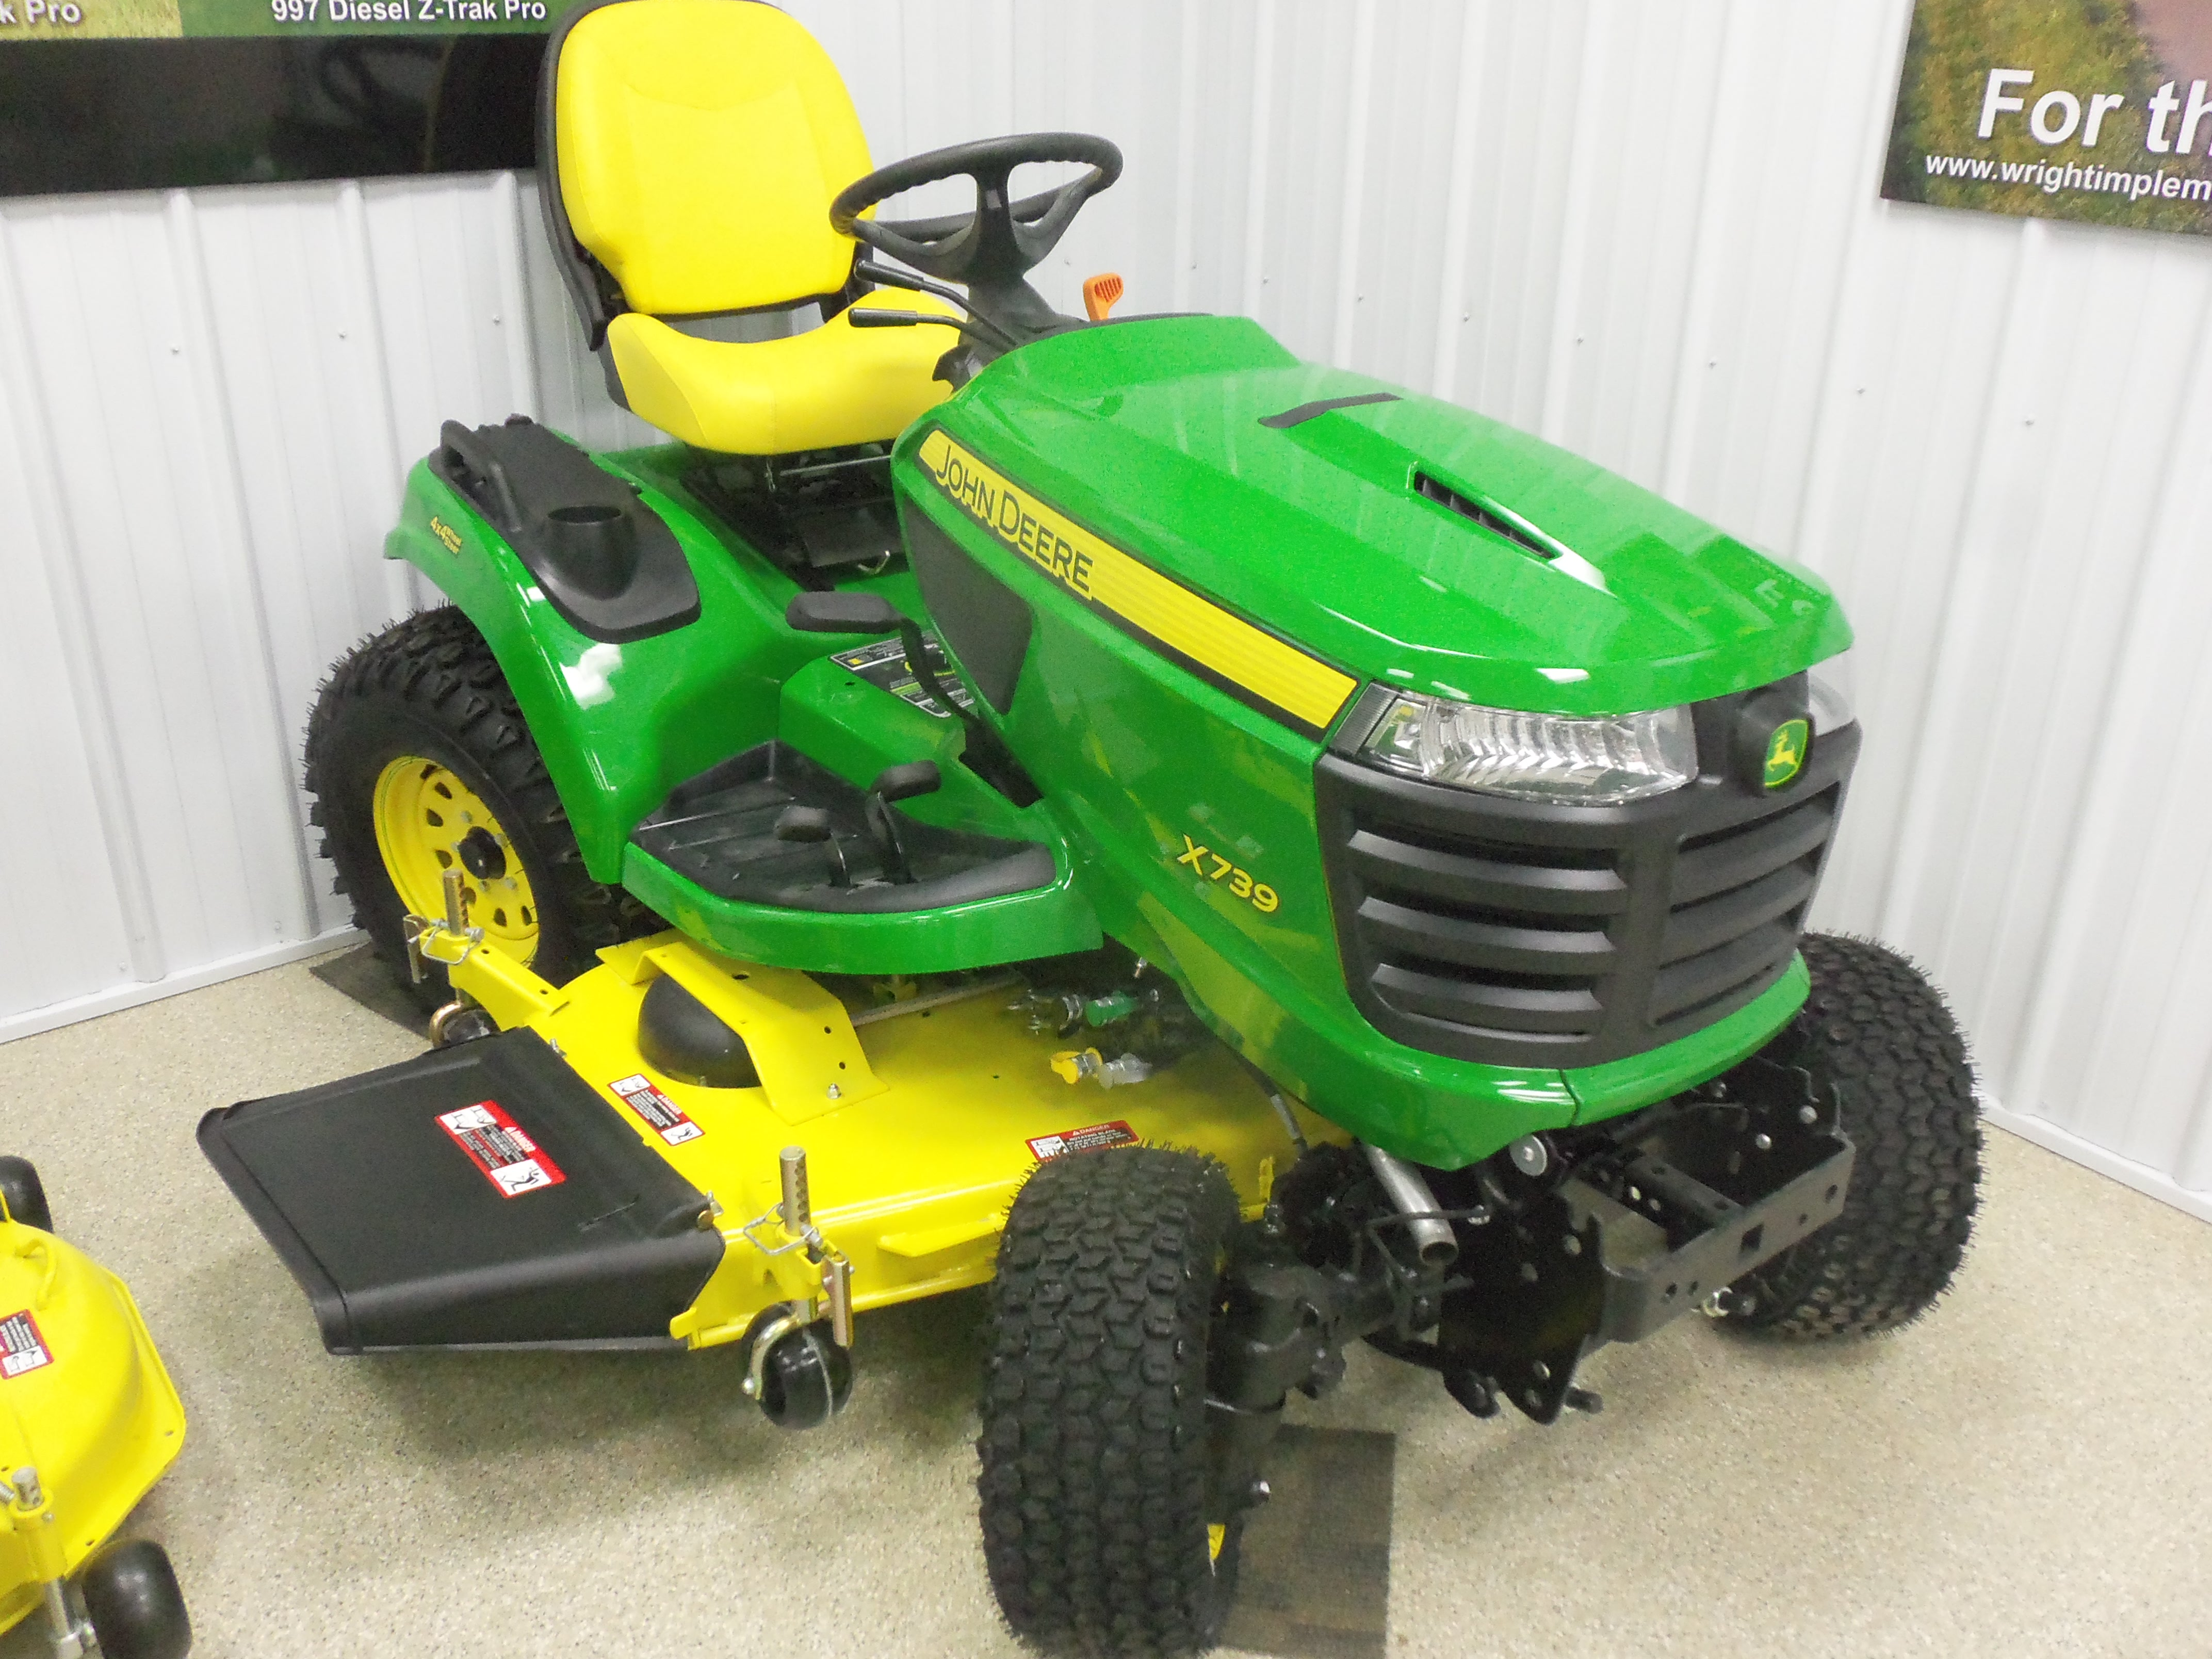 25.5 hp John Deere X739 | John Deere equipment | Pinterest